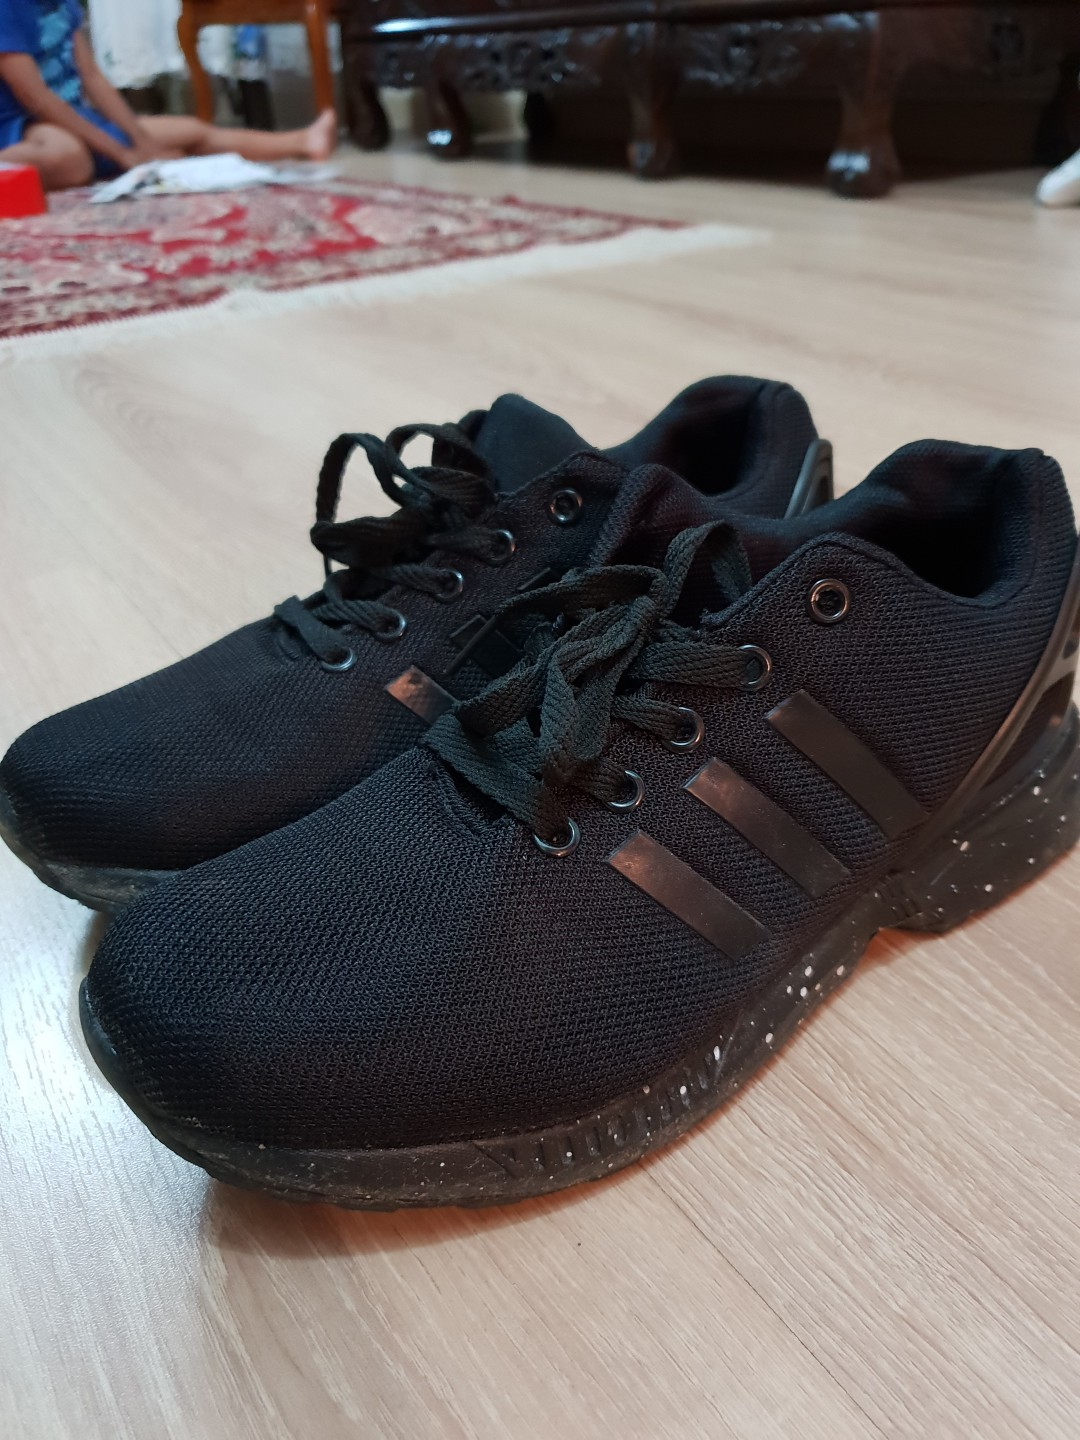 855ff25988fb0 sweden adidas zx flux multicolor trainers 092b7 fc787  low price adidas zx  flux copy ori womens fashion shoes on carousell 1c099 bb970